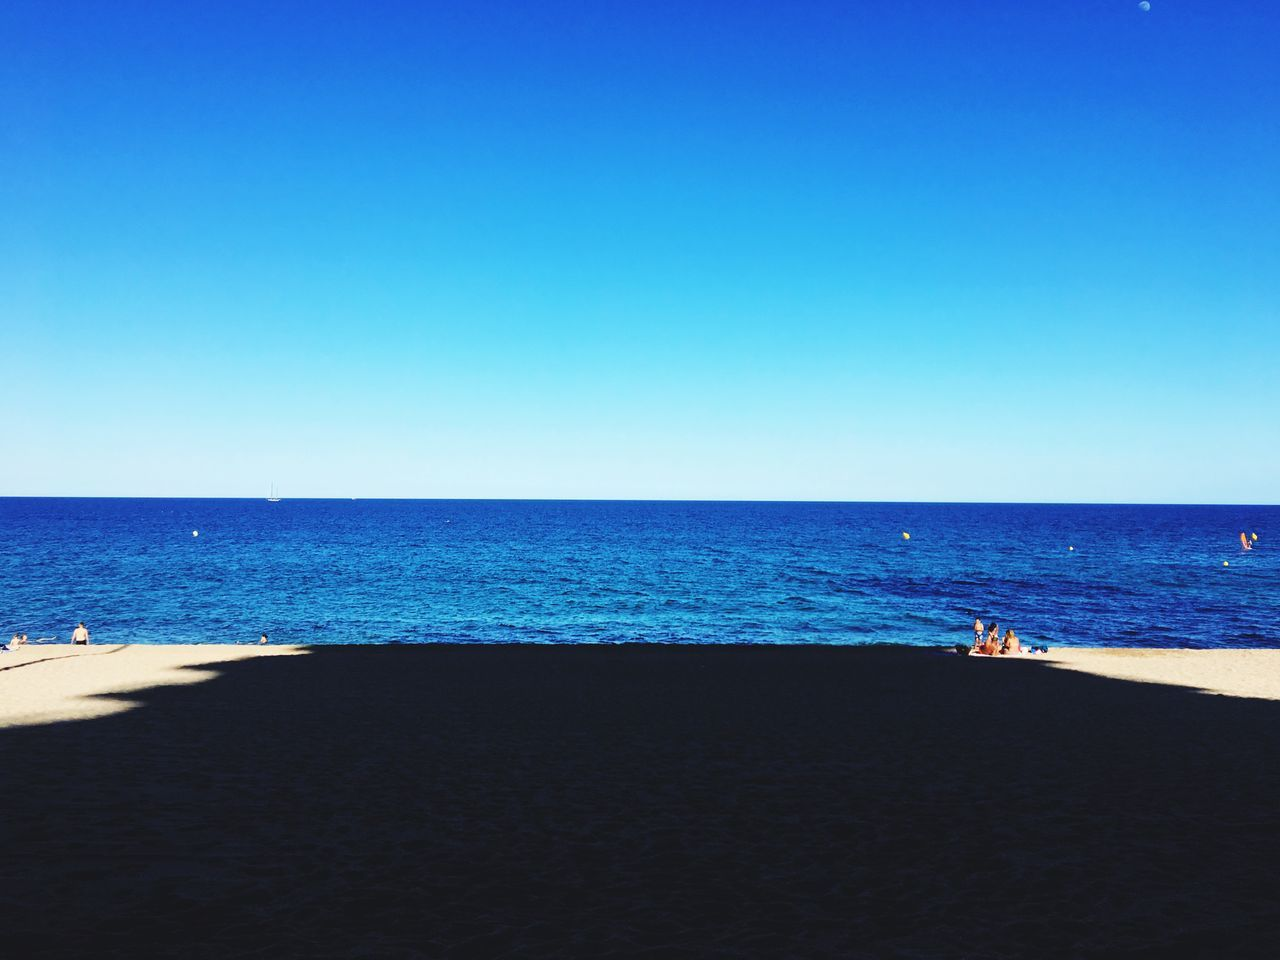 Sea Horizon Over Water Beach Clear Sky Blue Copy Space Water Scenics Sand Tranquil Scene Nature Tranquility Beauty In Nature Day Vacations Outdoors Sky No People